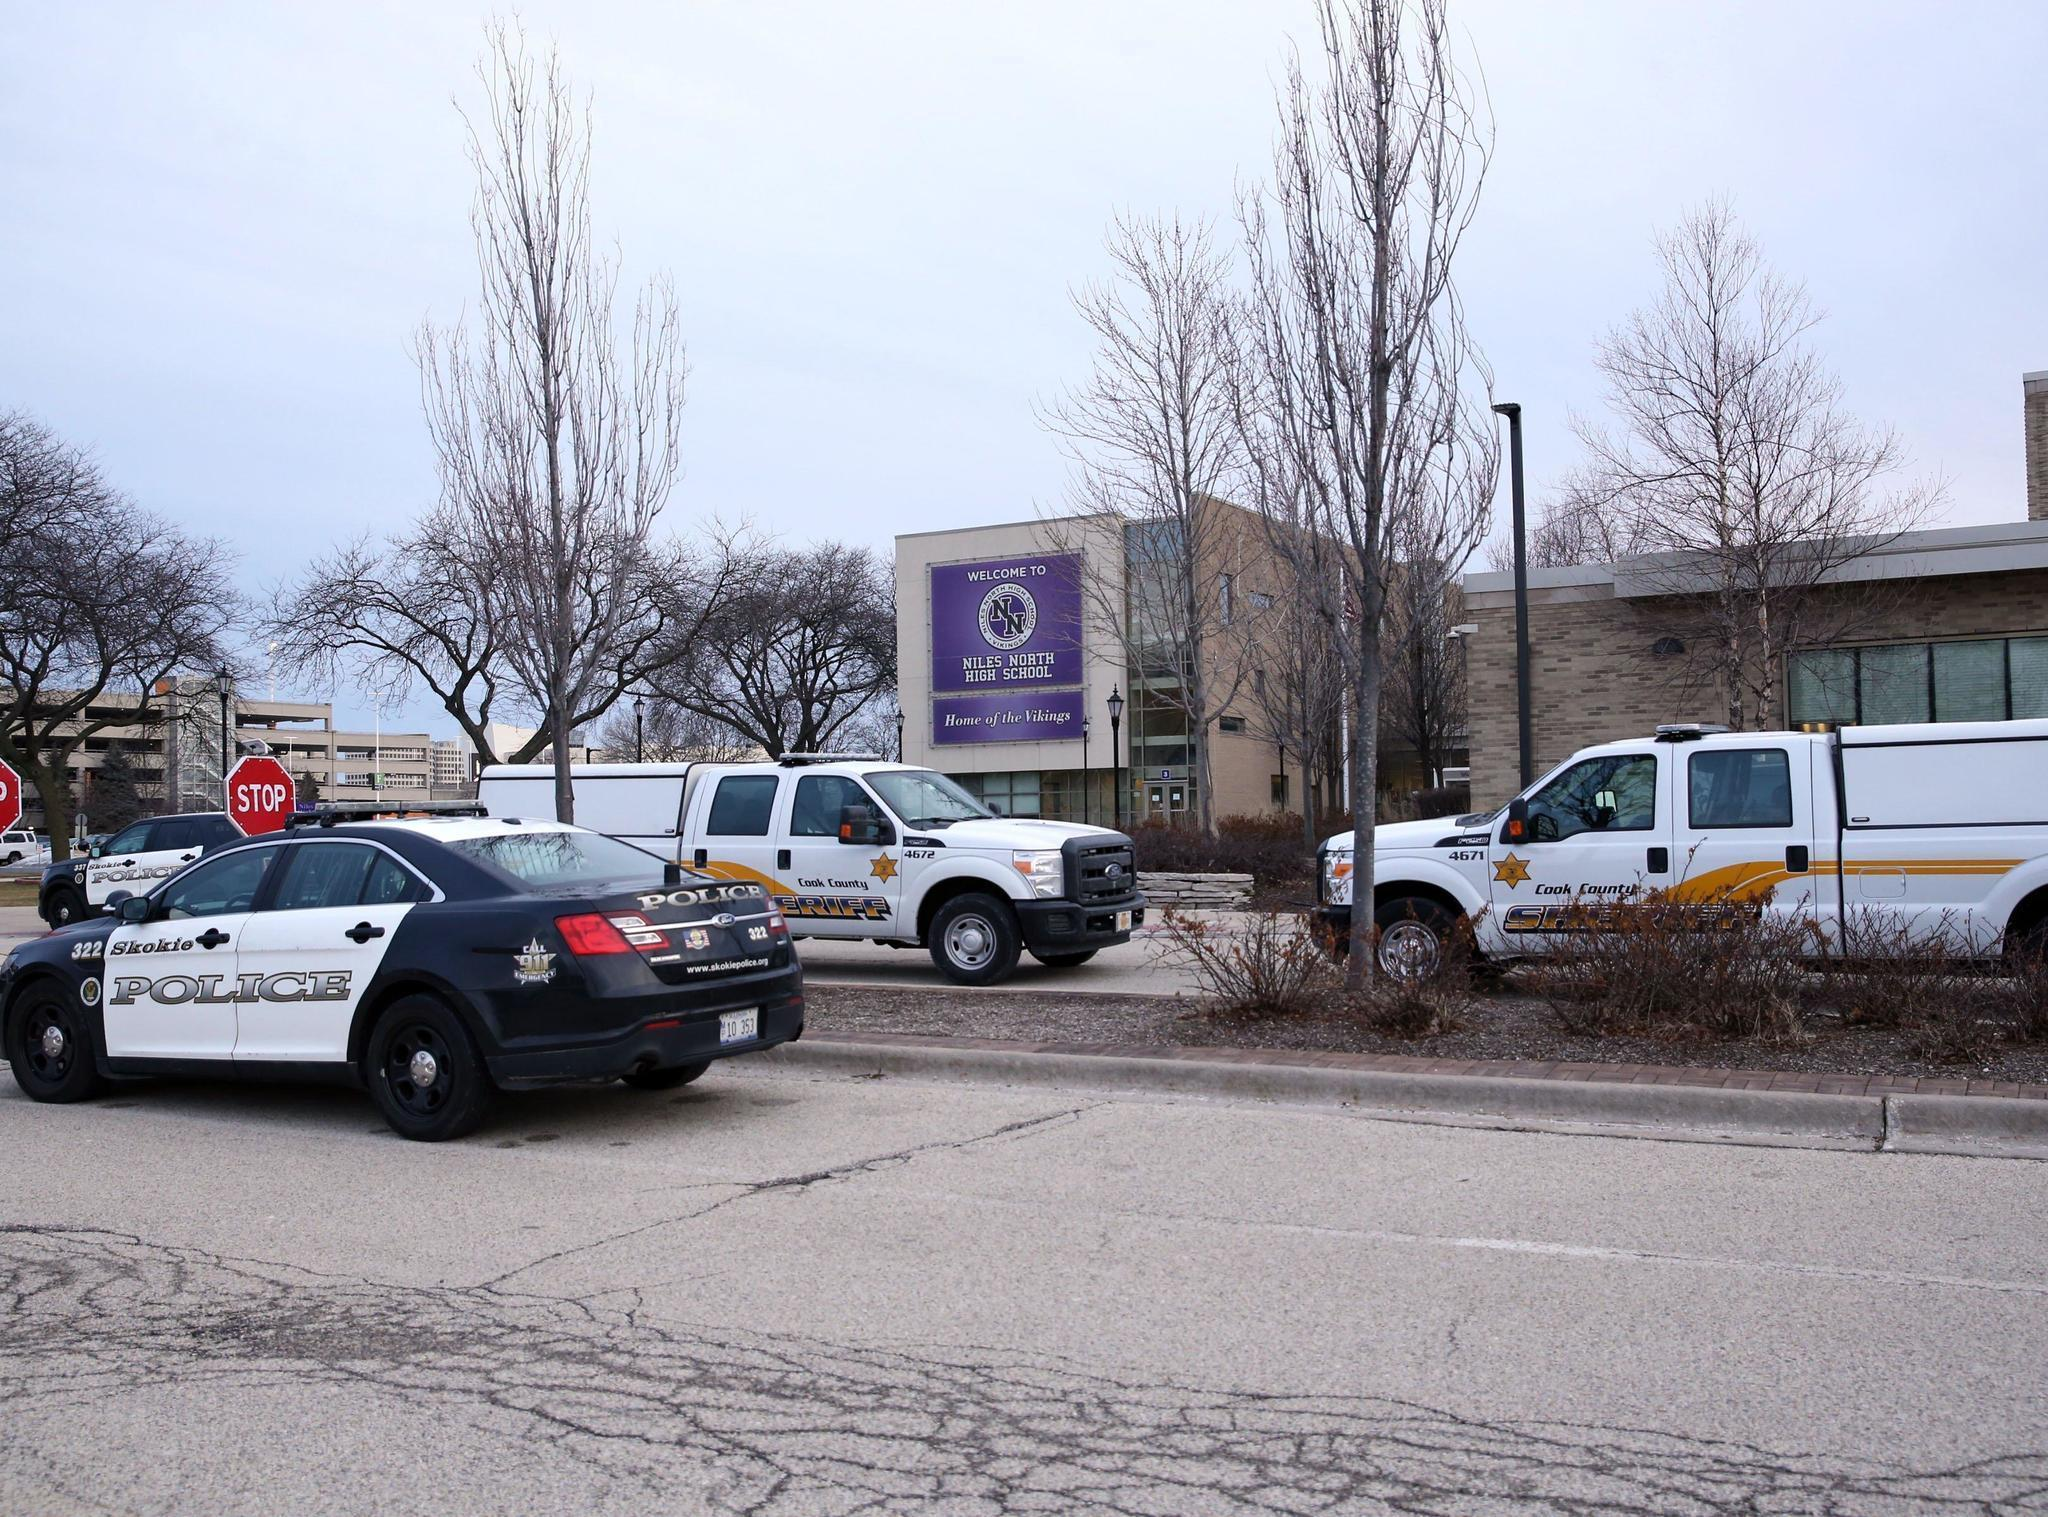 Niles North High School evacuated after bomb threat: officials